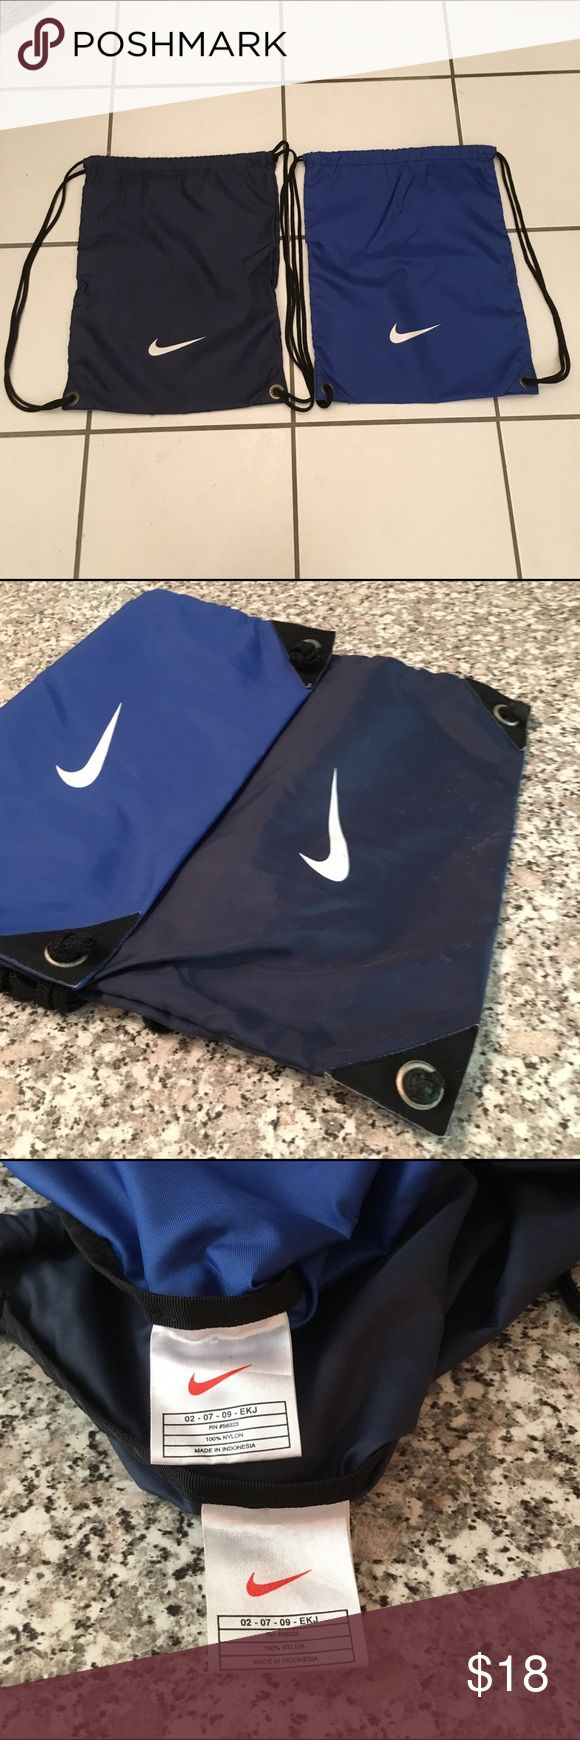 Nike lightweight drawstring bags BUNDLE $18 BUNDLE!!! GUC Two Nike lightweight drawstring bags. One is royal blue and the other is navy blue. Both have a white Nike swoosh and strong black cords. All items come from a smoke free home. Measurements available upon request. All questions are welcome. Nike Bags Backpacks